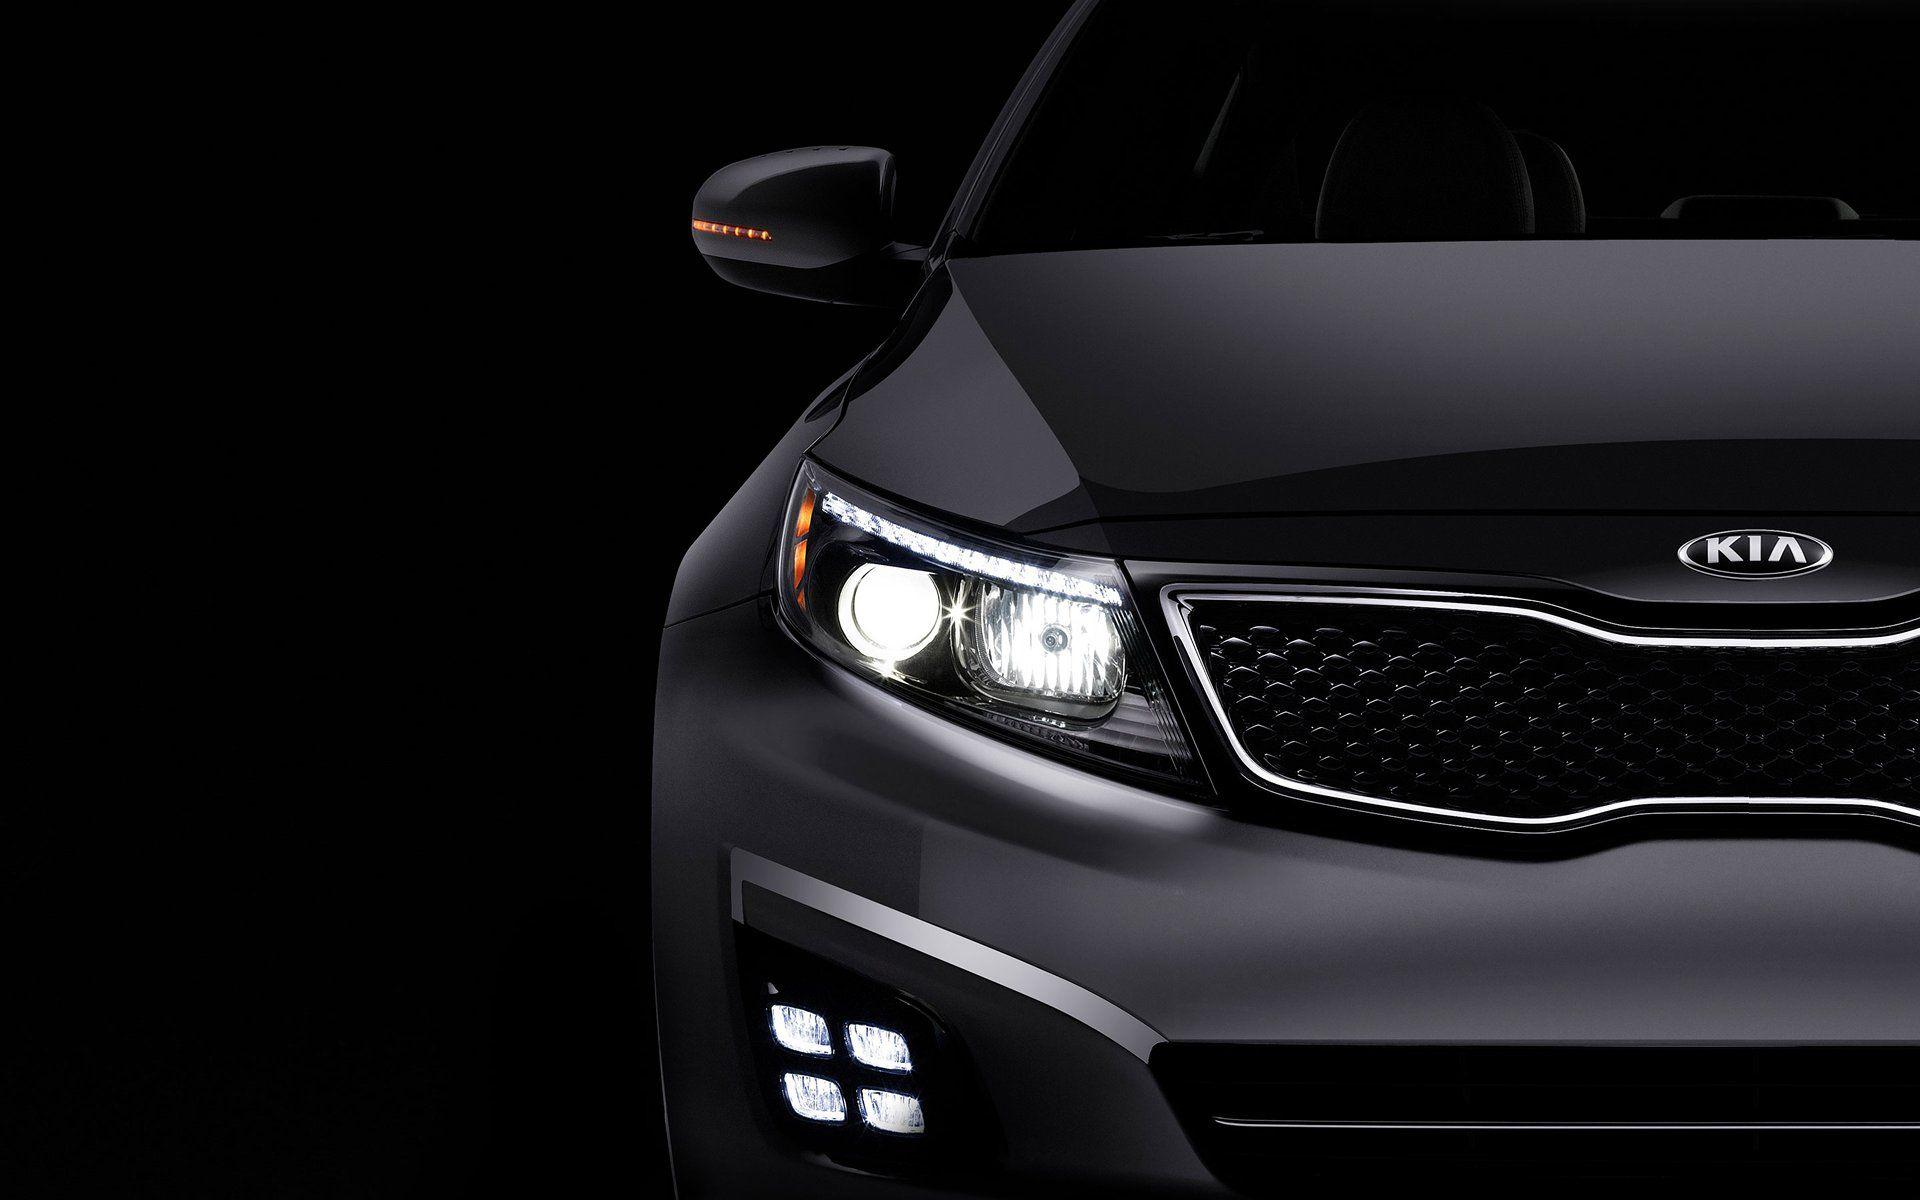 Kia Optima Wallpapers, Kia Optima Wallpapers in HQ Resolution, 40 ...